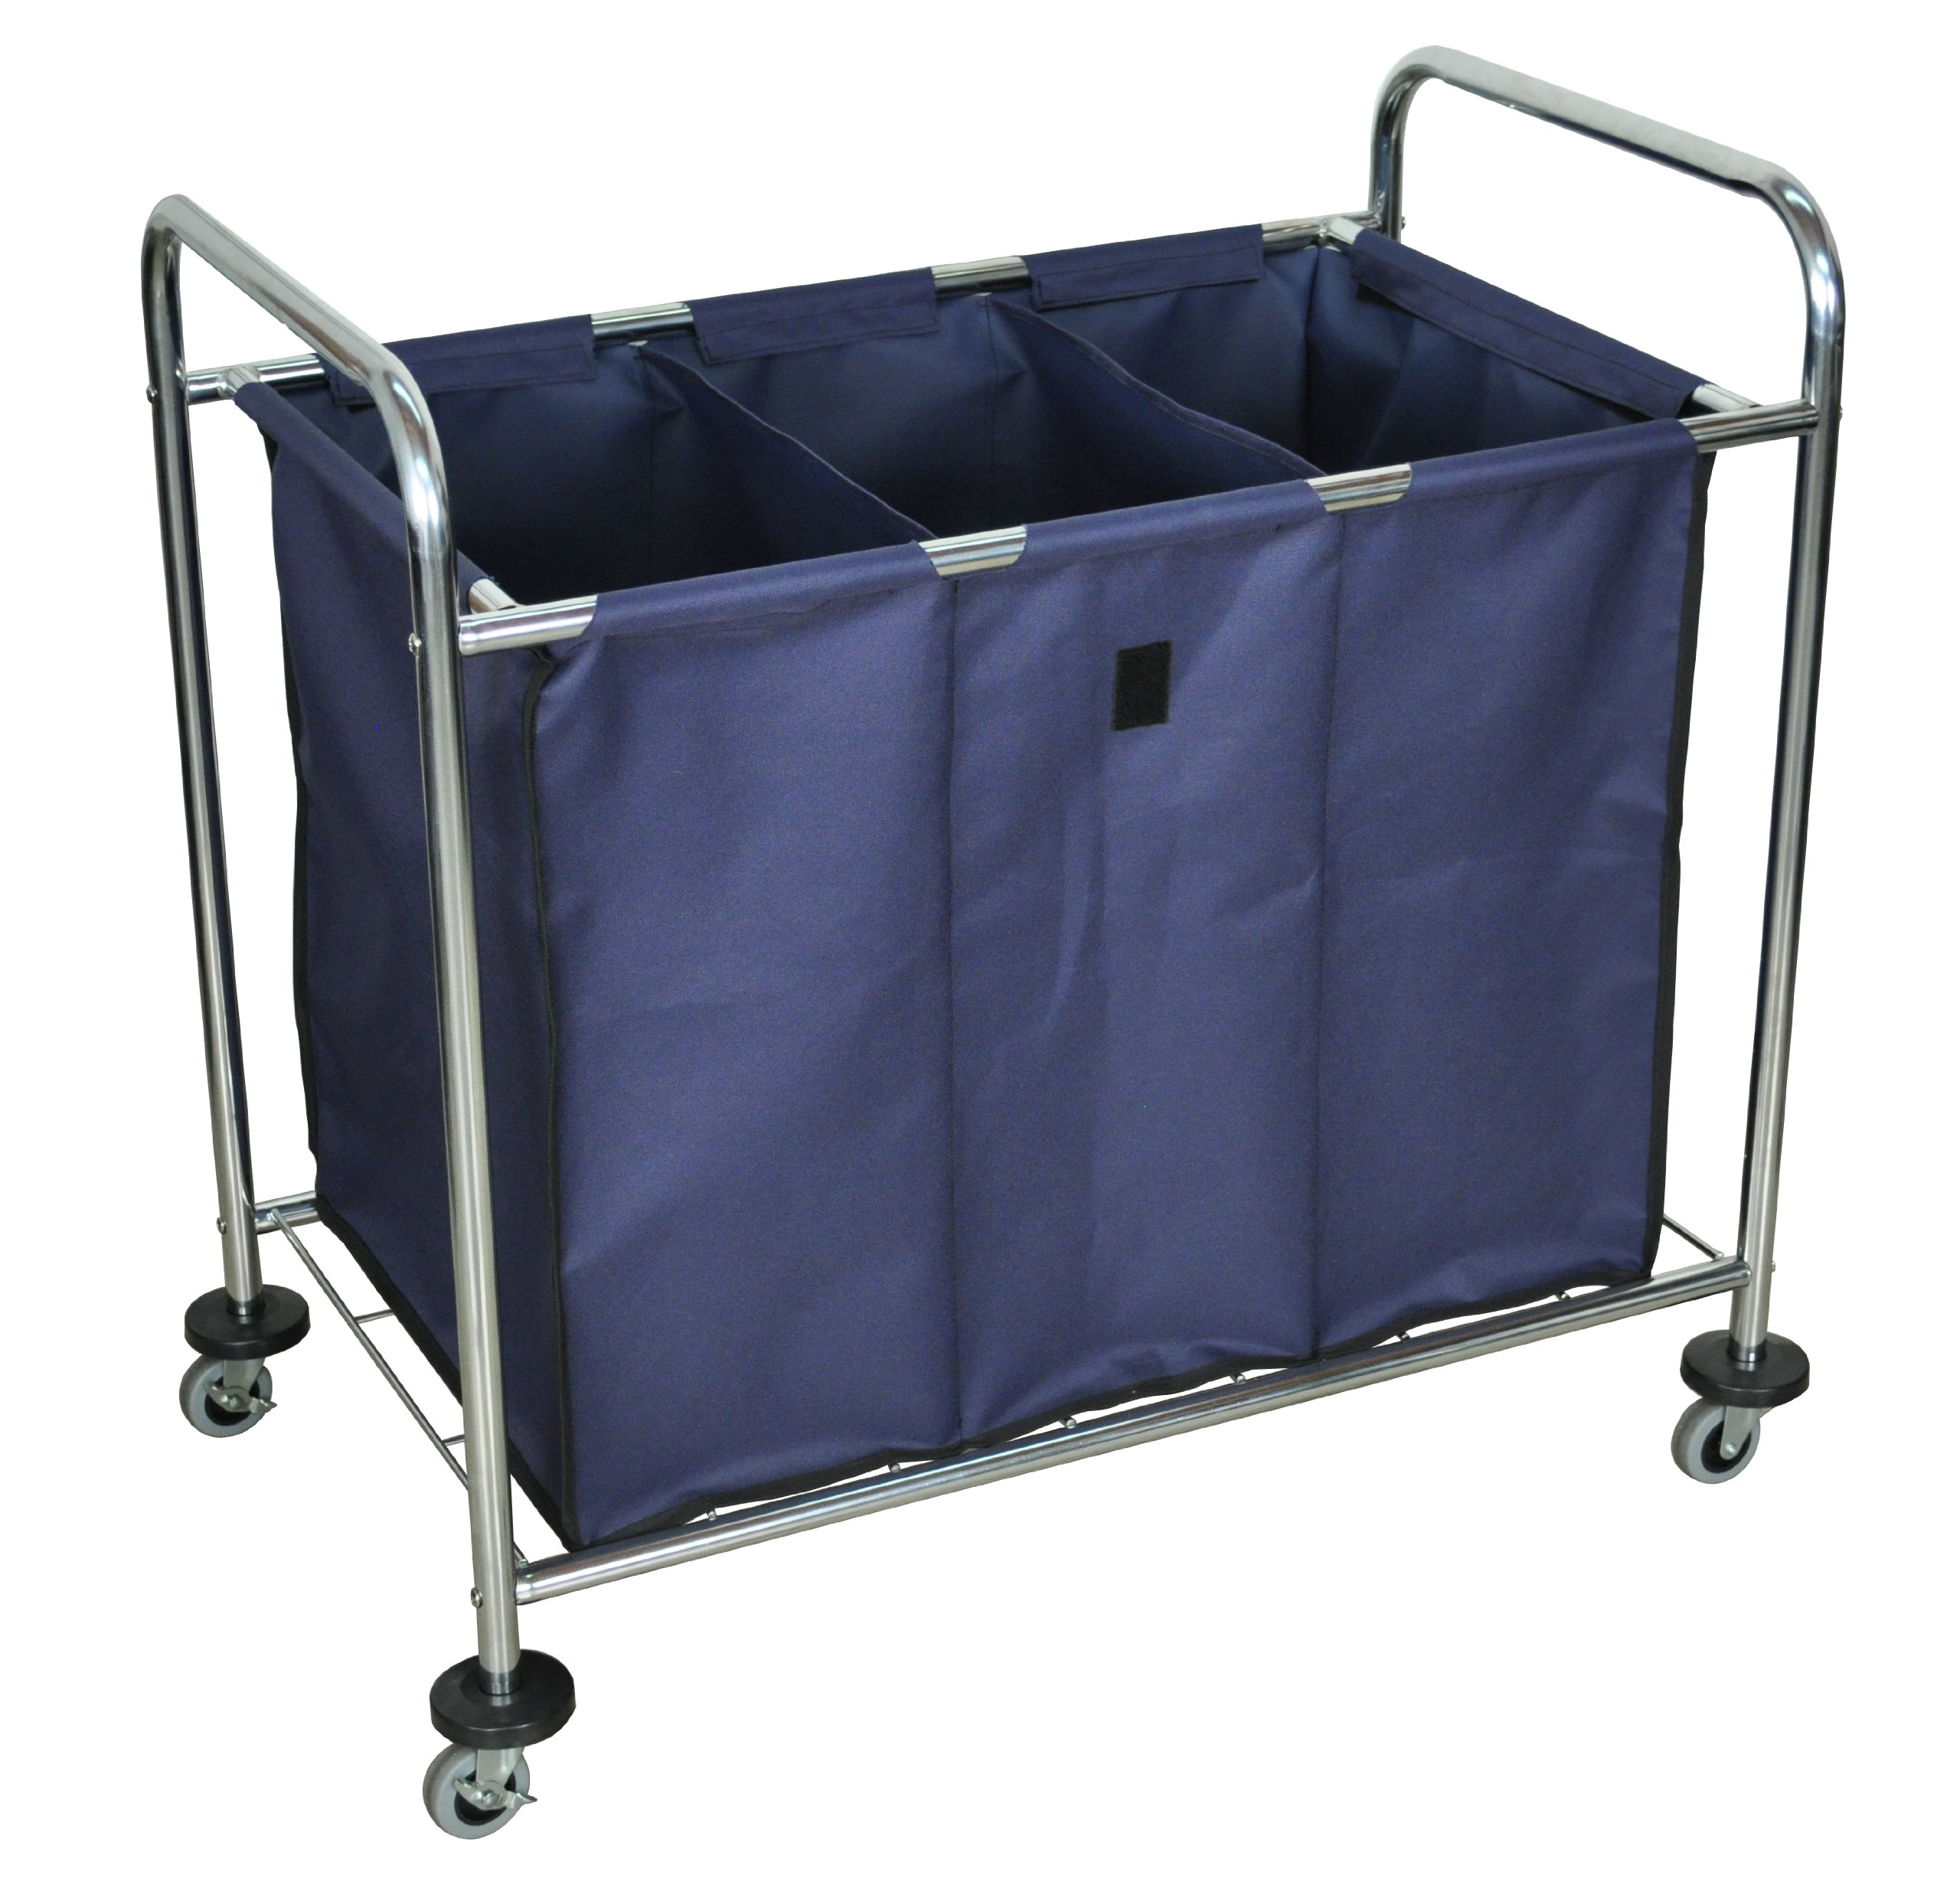 LUXOR HL15 Heavy Duty Industrial Laundry Sorter Cart with Triple Dividers by Luxor